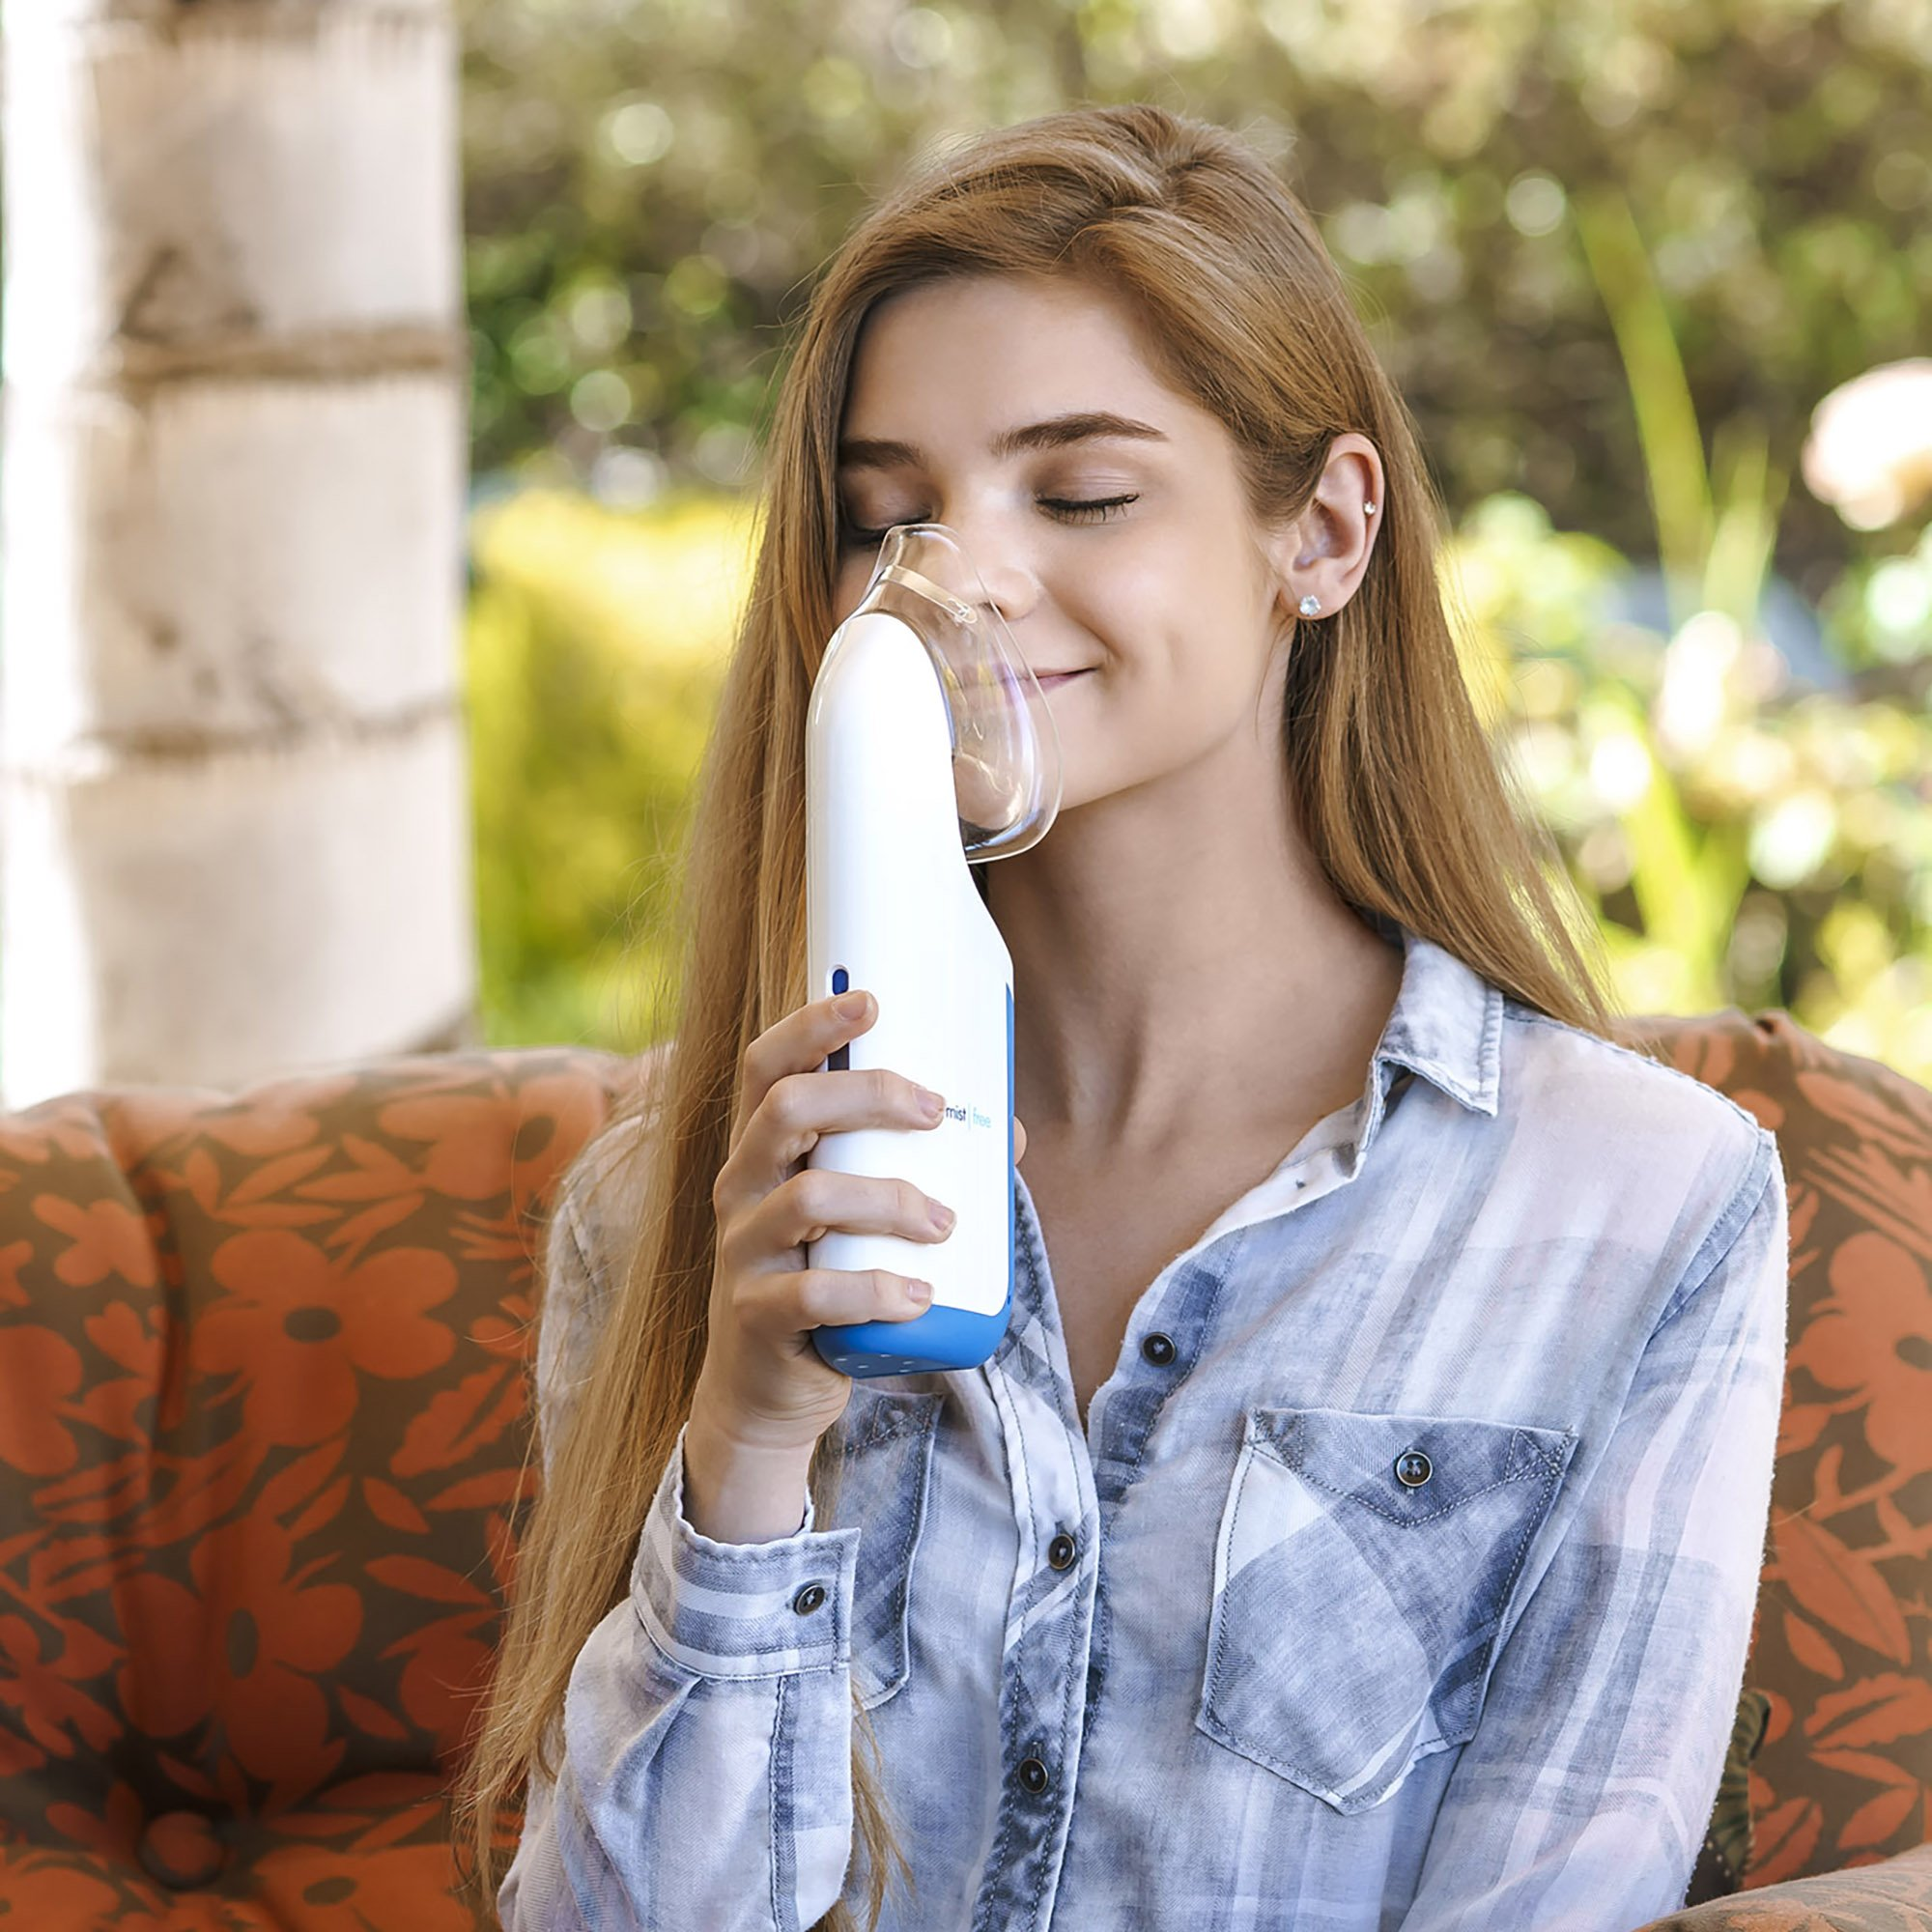 New Cordless Mypurmist Free - Ultrapure Handheld Steam Inhaler and Vaporizer (Mypurmist Free Kit). Fast Natural Relief from Sinus Congestion, Colds and Allergies by MyPurMist (Image #5)